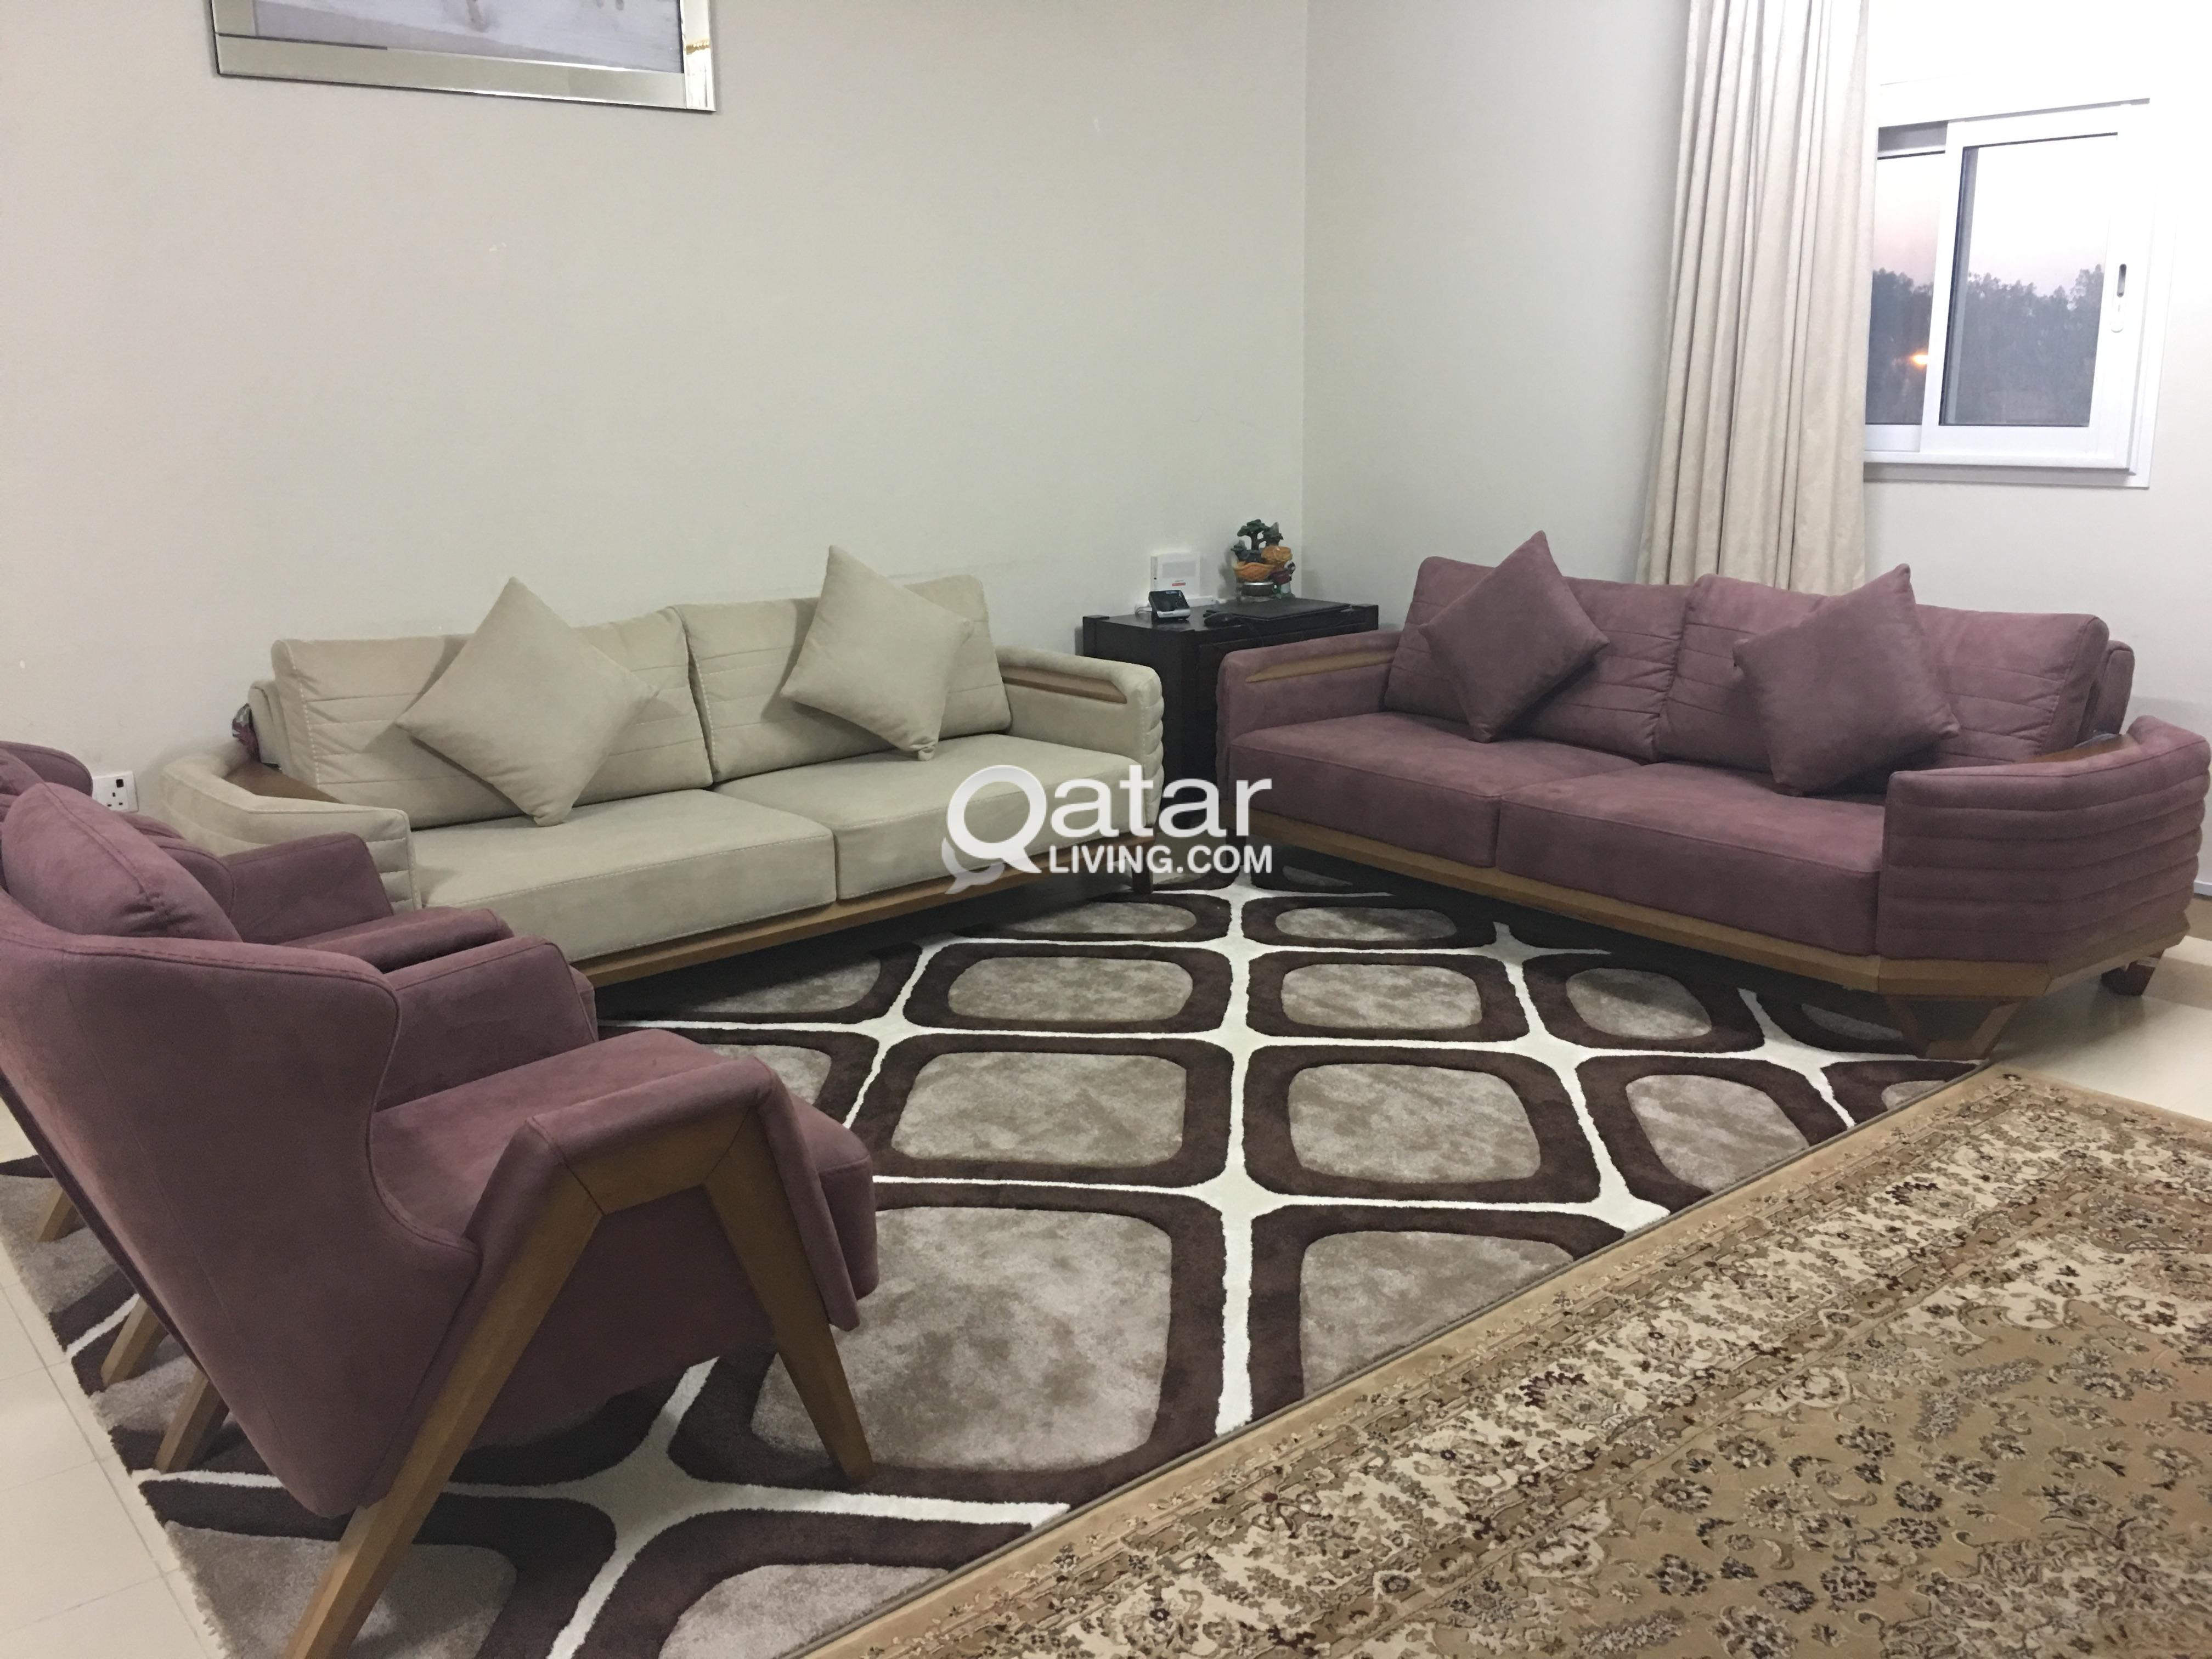 Sofa Set Price In Qatar Turkis Sofa Interesting Furniture Sar Excellent Turkish